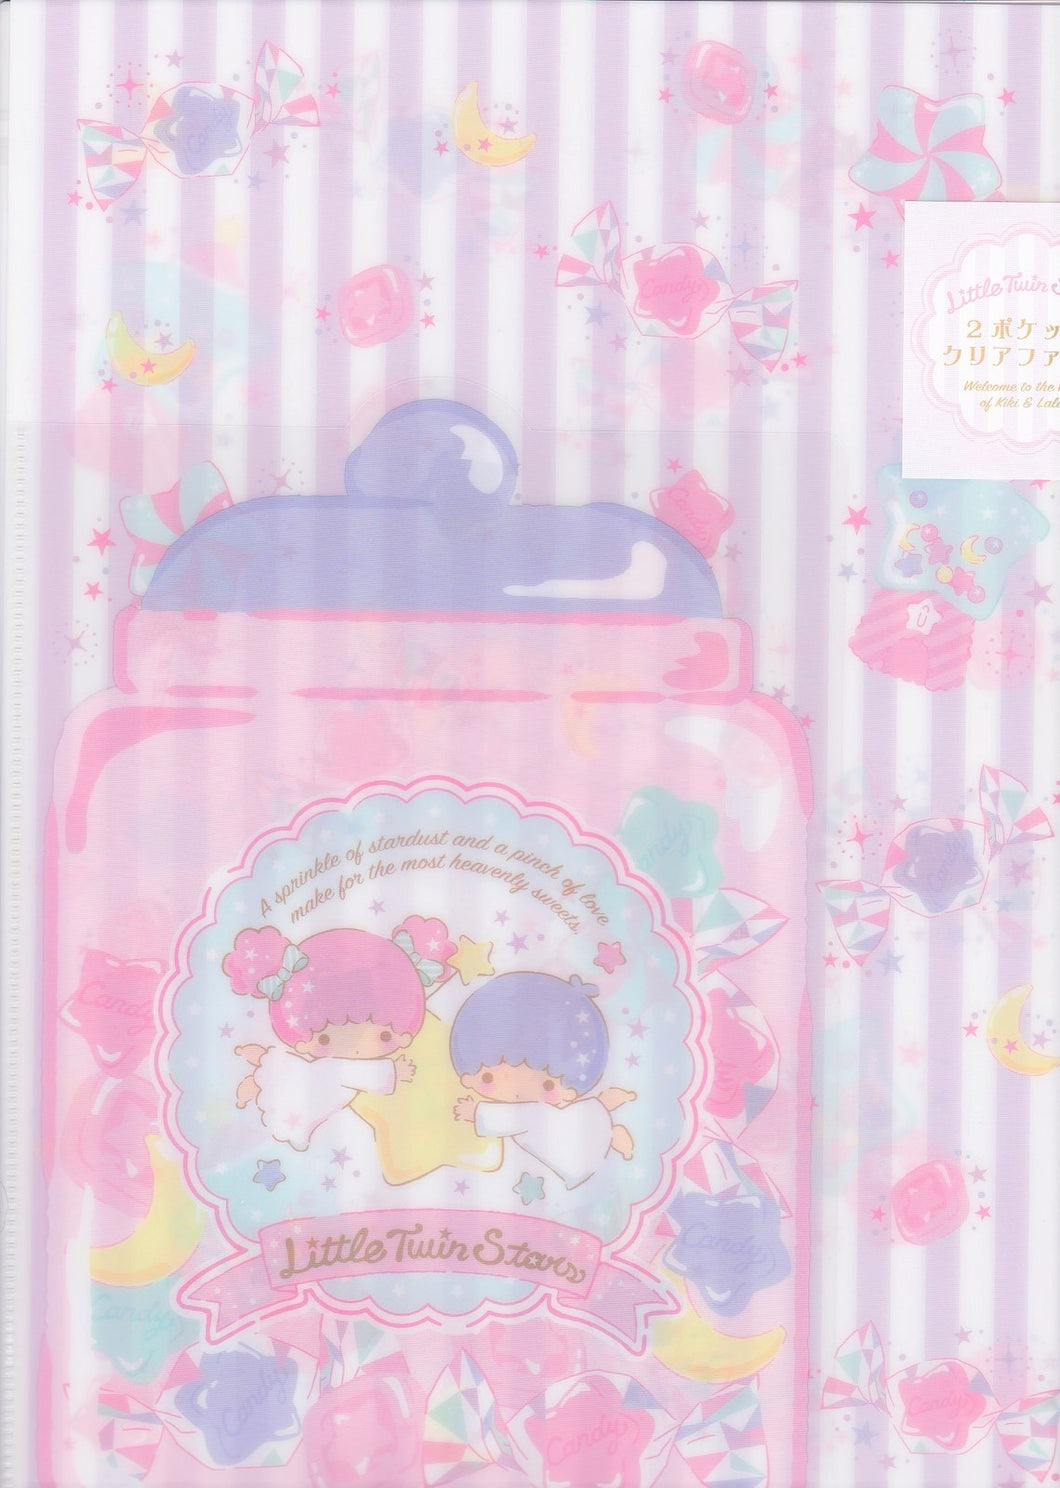 Sanrio Original Little Twin Stars A4 File Folder Organizer with  A5 Pocket